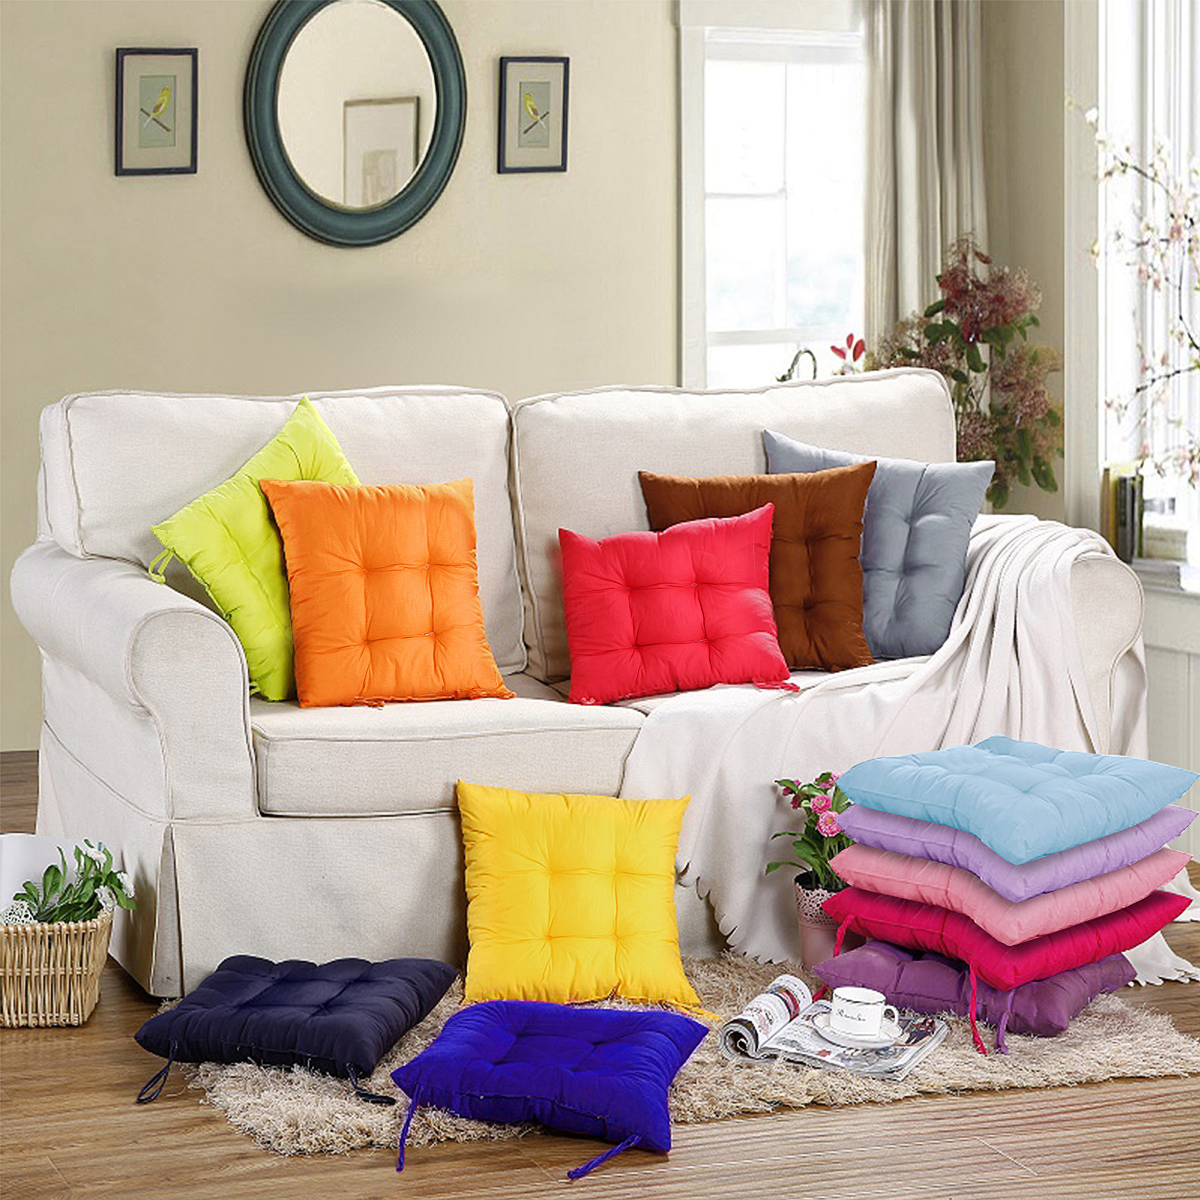 Non-Slip 15.8''*15.8'' Multi-Colors Soft Square Cotton Sit Tatami Mats Indoor Outdoor Pads Chair Sofa Floor Seat Cushion Pillow Buttocks For Garden Patio Home Kitchen Office Decor